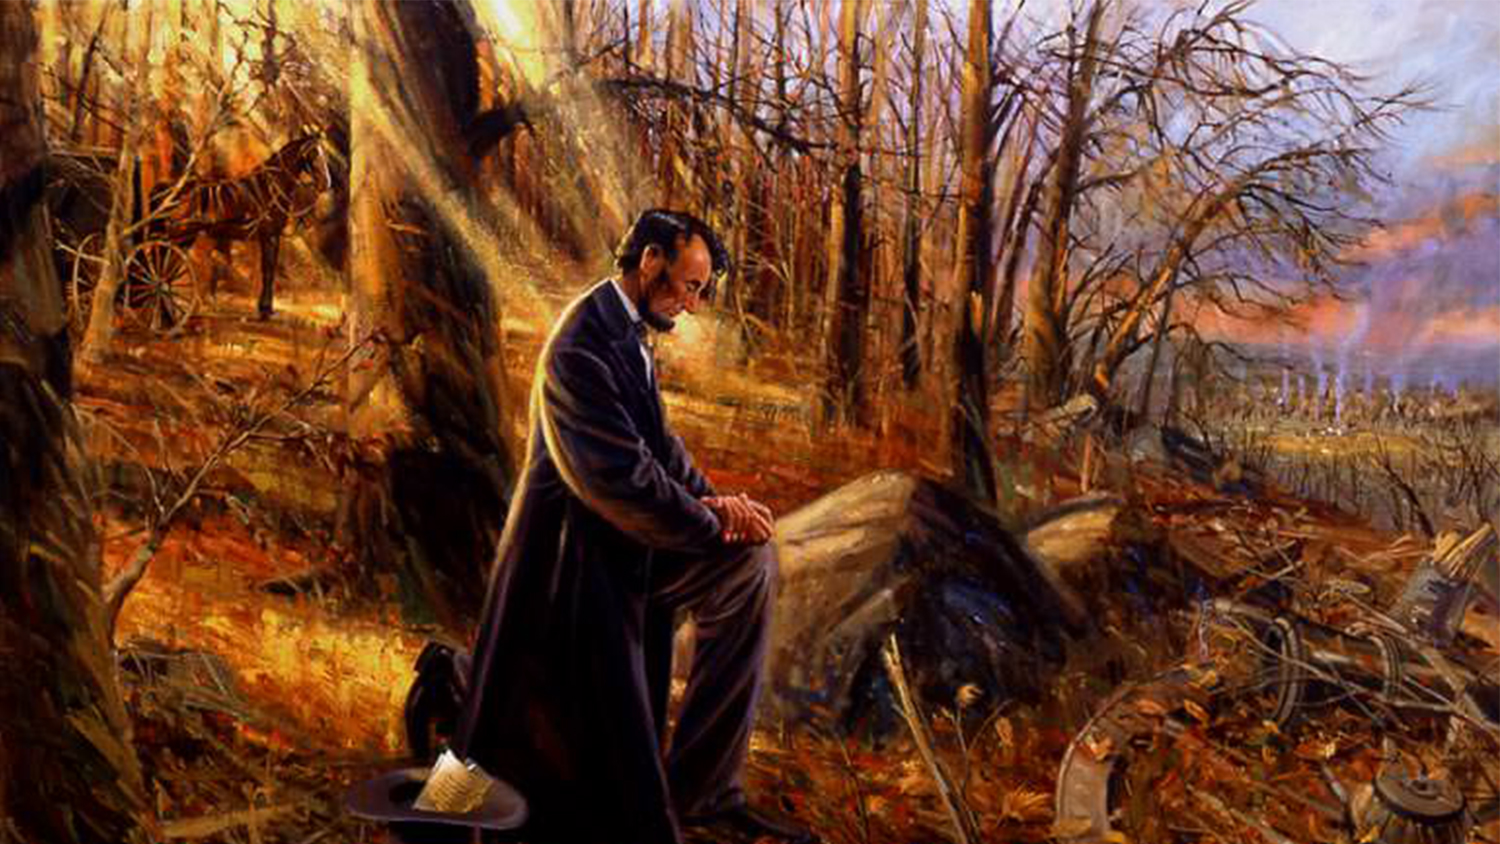 lincolnpraying-blog-111918